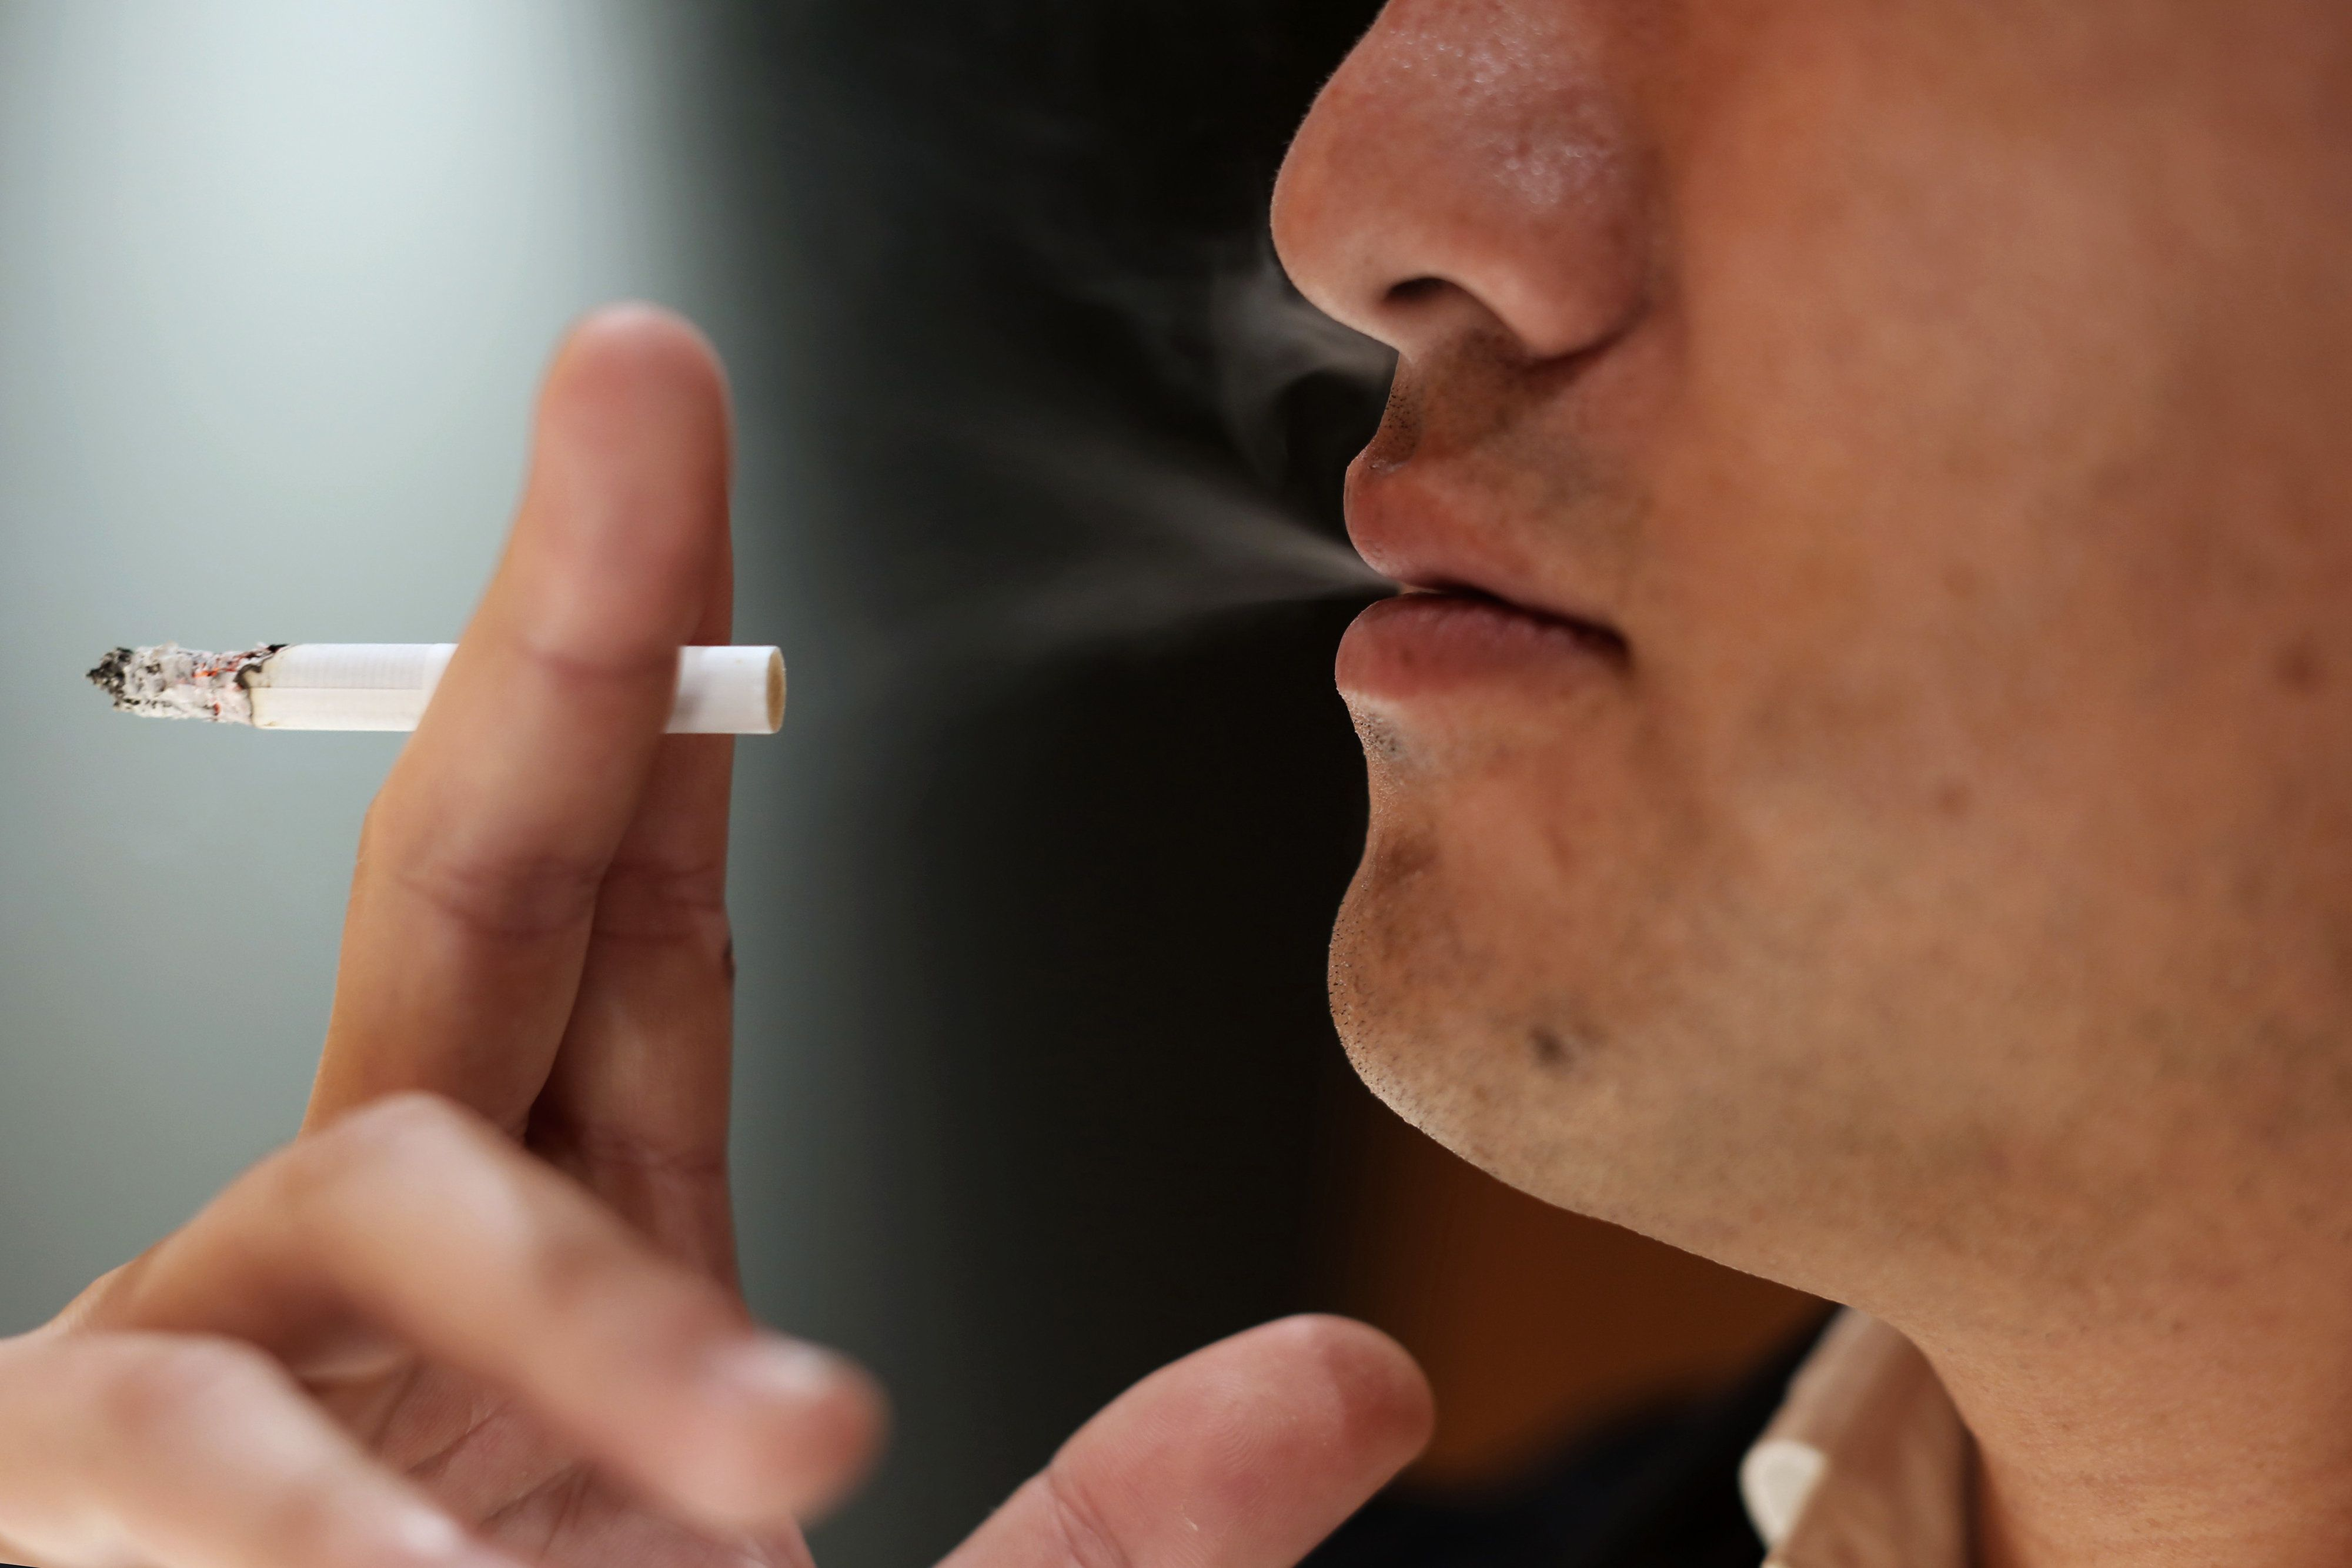 An estimated 18 percent of Japanese adults smoke, according to the World Health